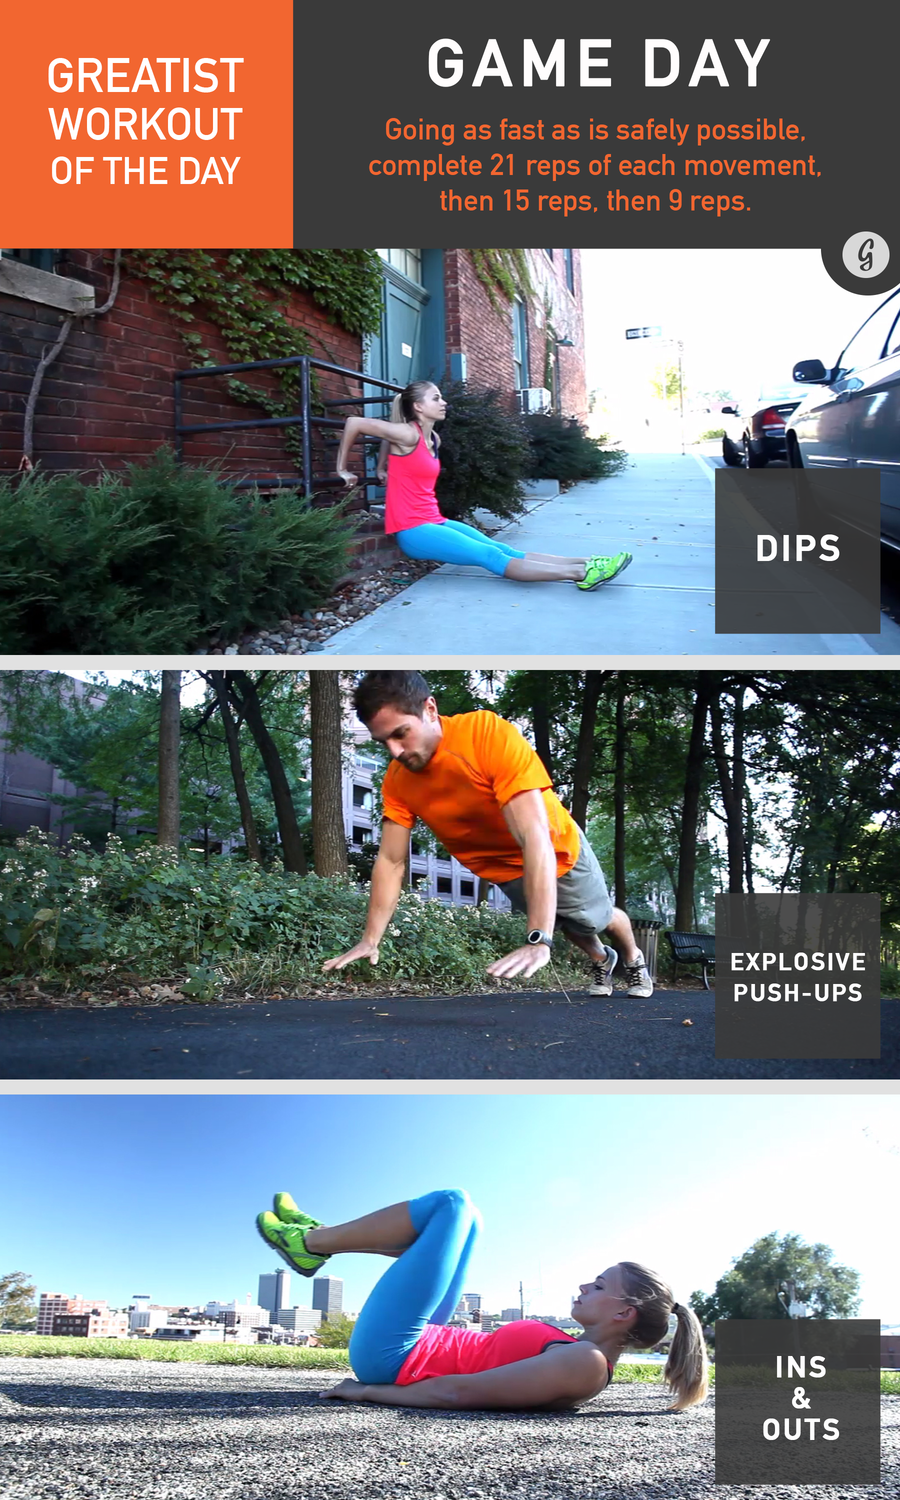 Watch Greatist Workout of the Day: Monday, June 23rd video